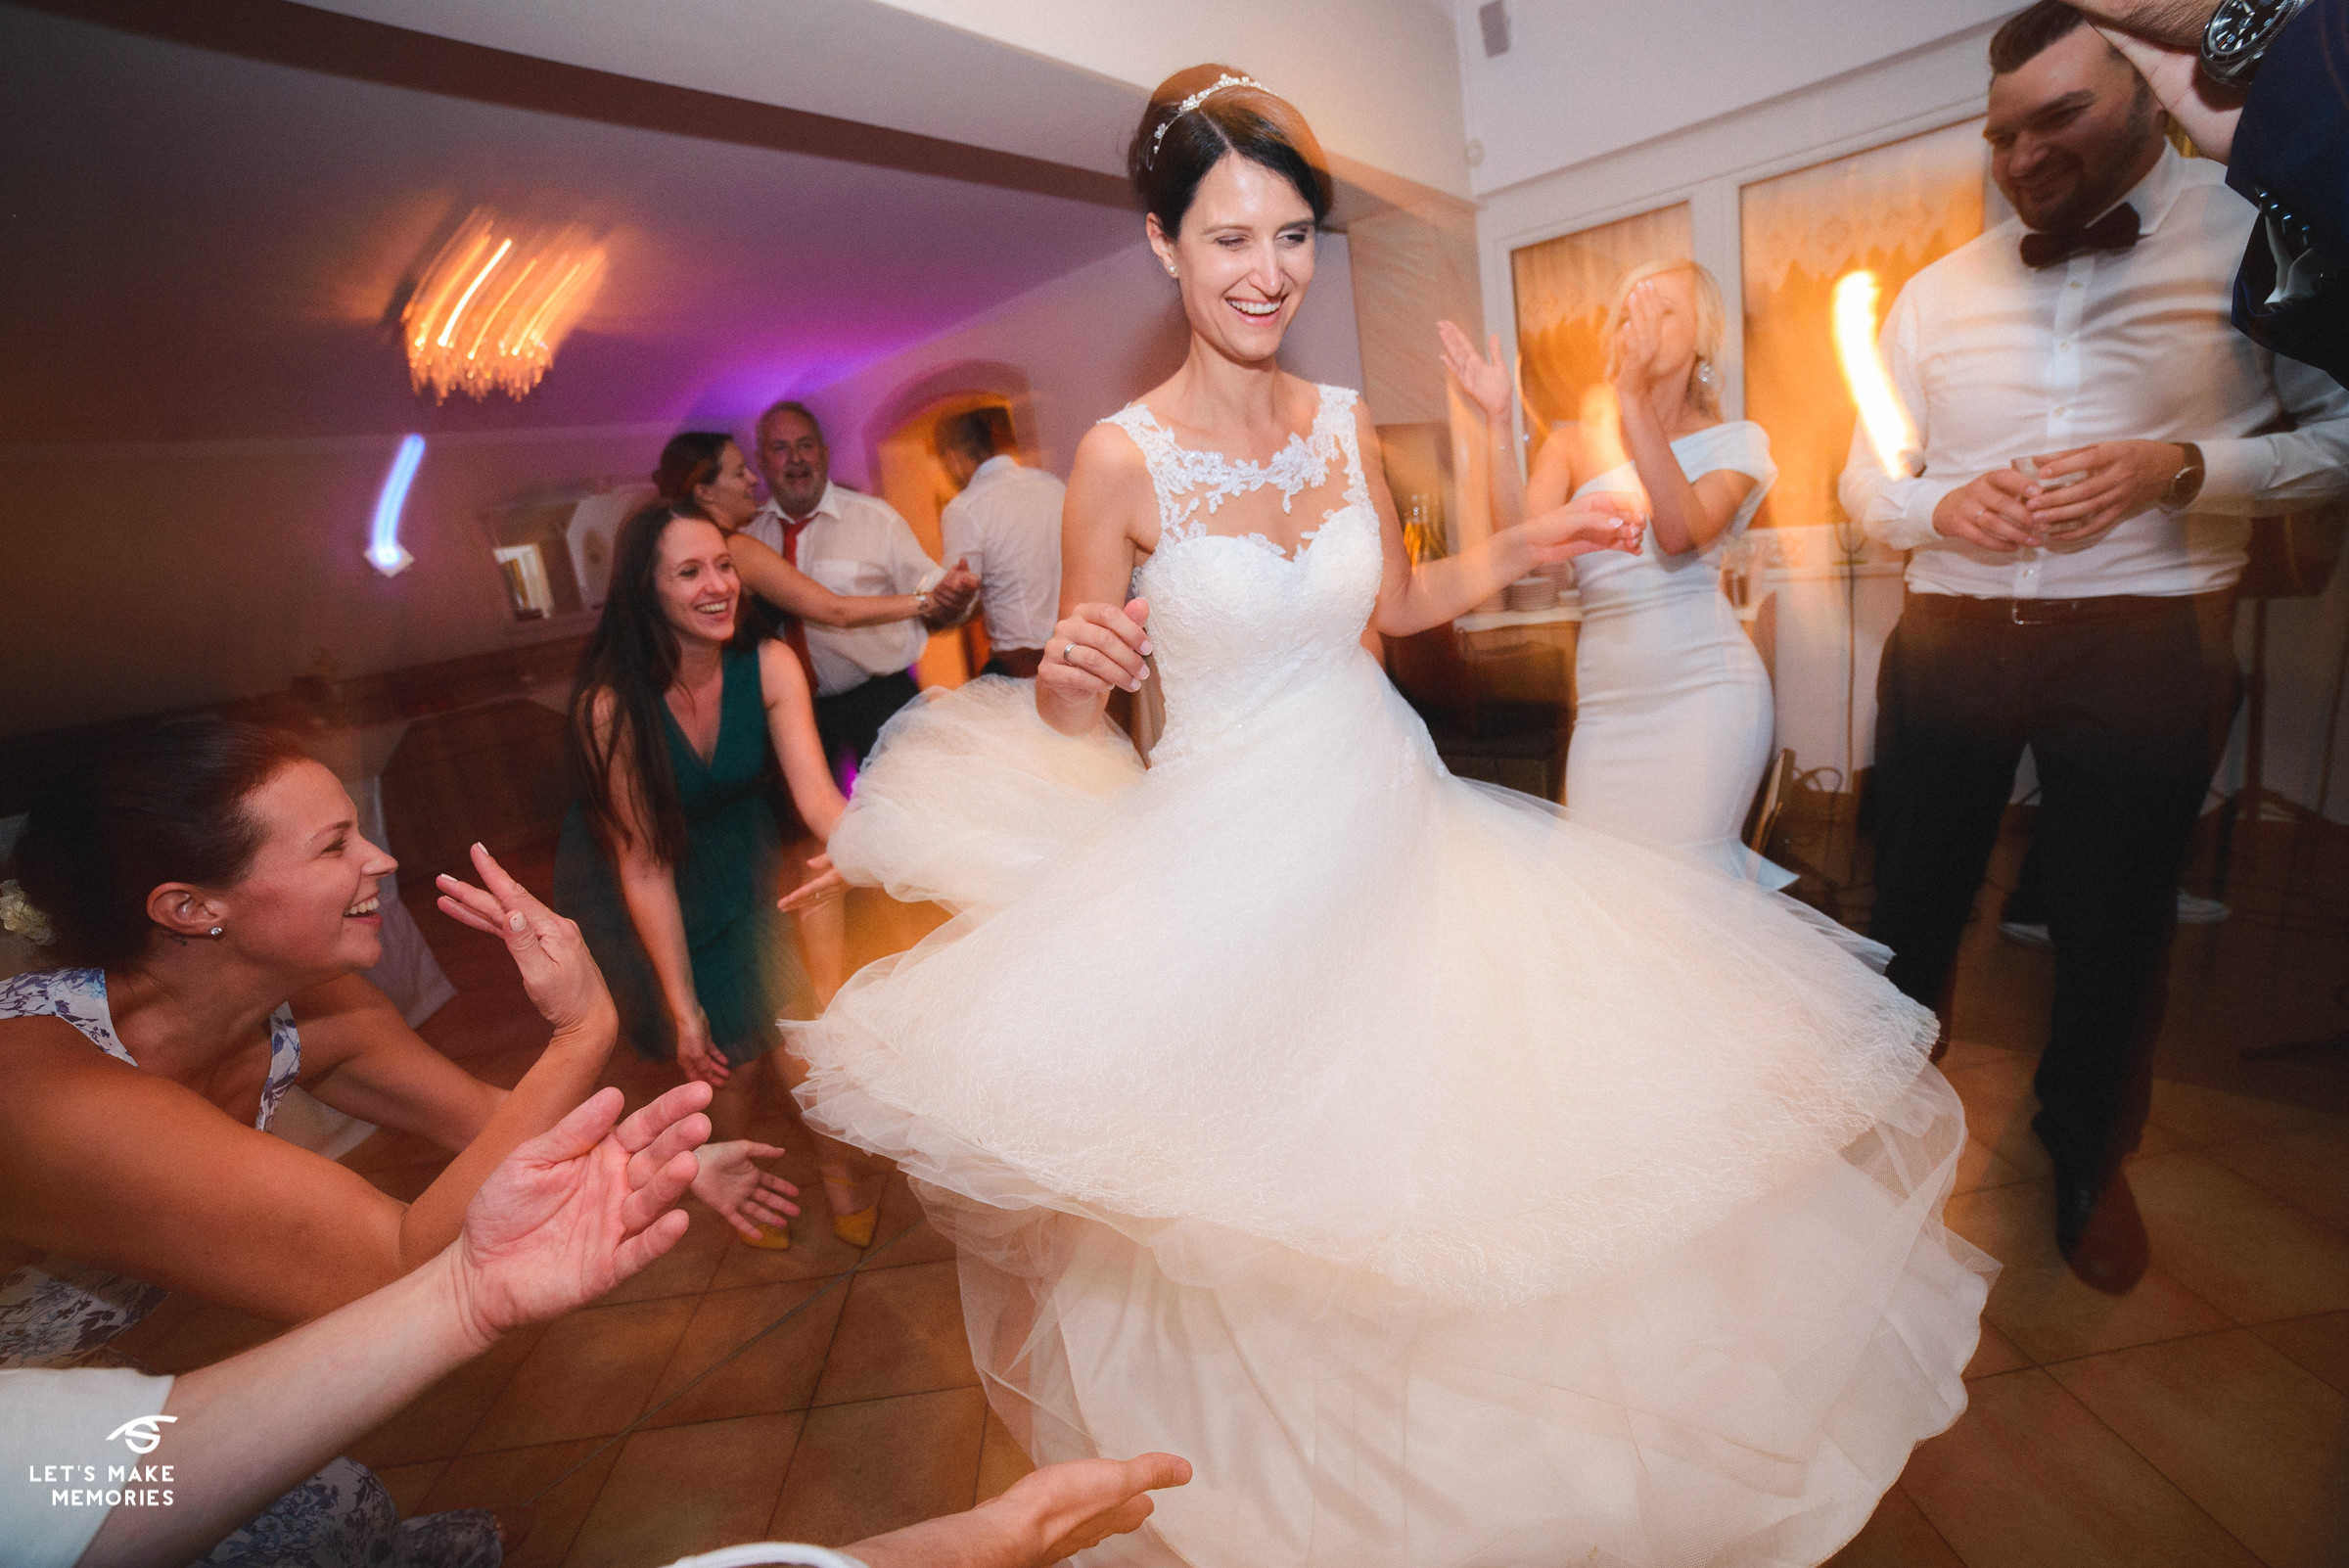 bride spinning around with her dress expanding